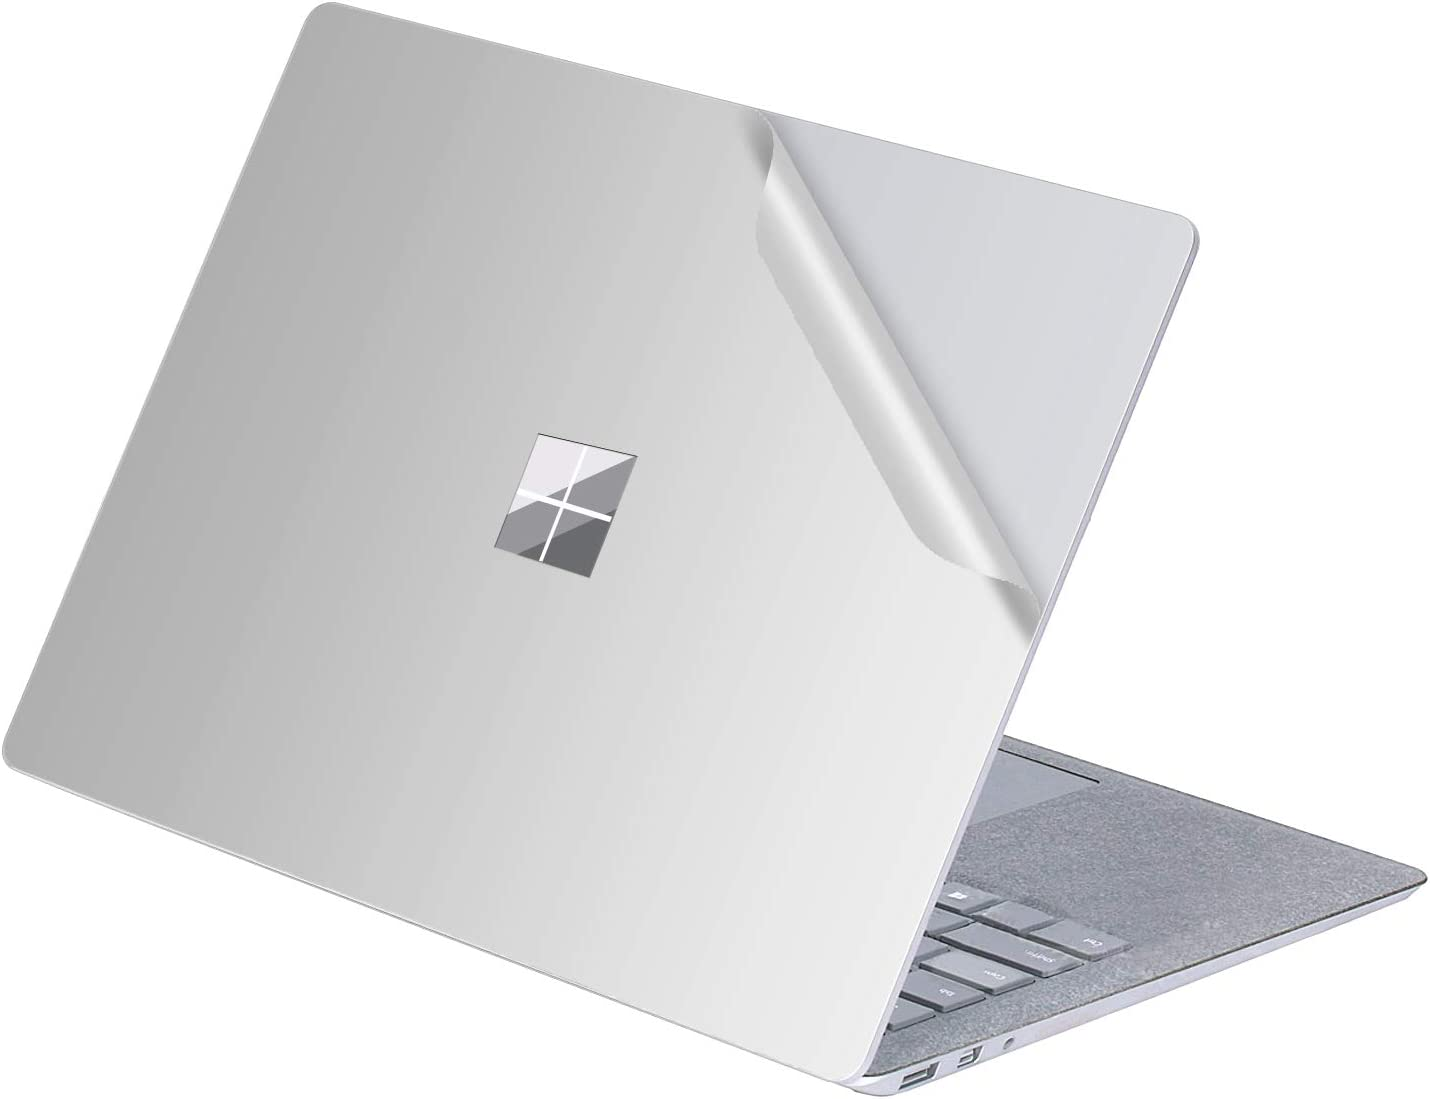 MasiBloom Top Sticker Protective Decal for 13 13.5 inch Microsoft Surface Laptop 3 & 2 & 1 (2019 2018 2017 Released) Anti-Scratch Vinyl Laptop Cover Skin, Not fit for Surface Book(Pure Color- Silver)